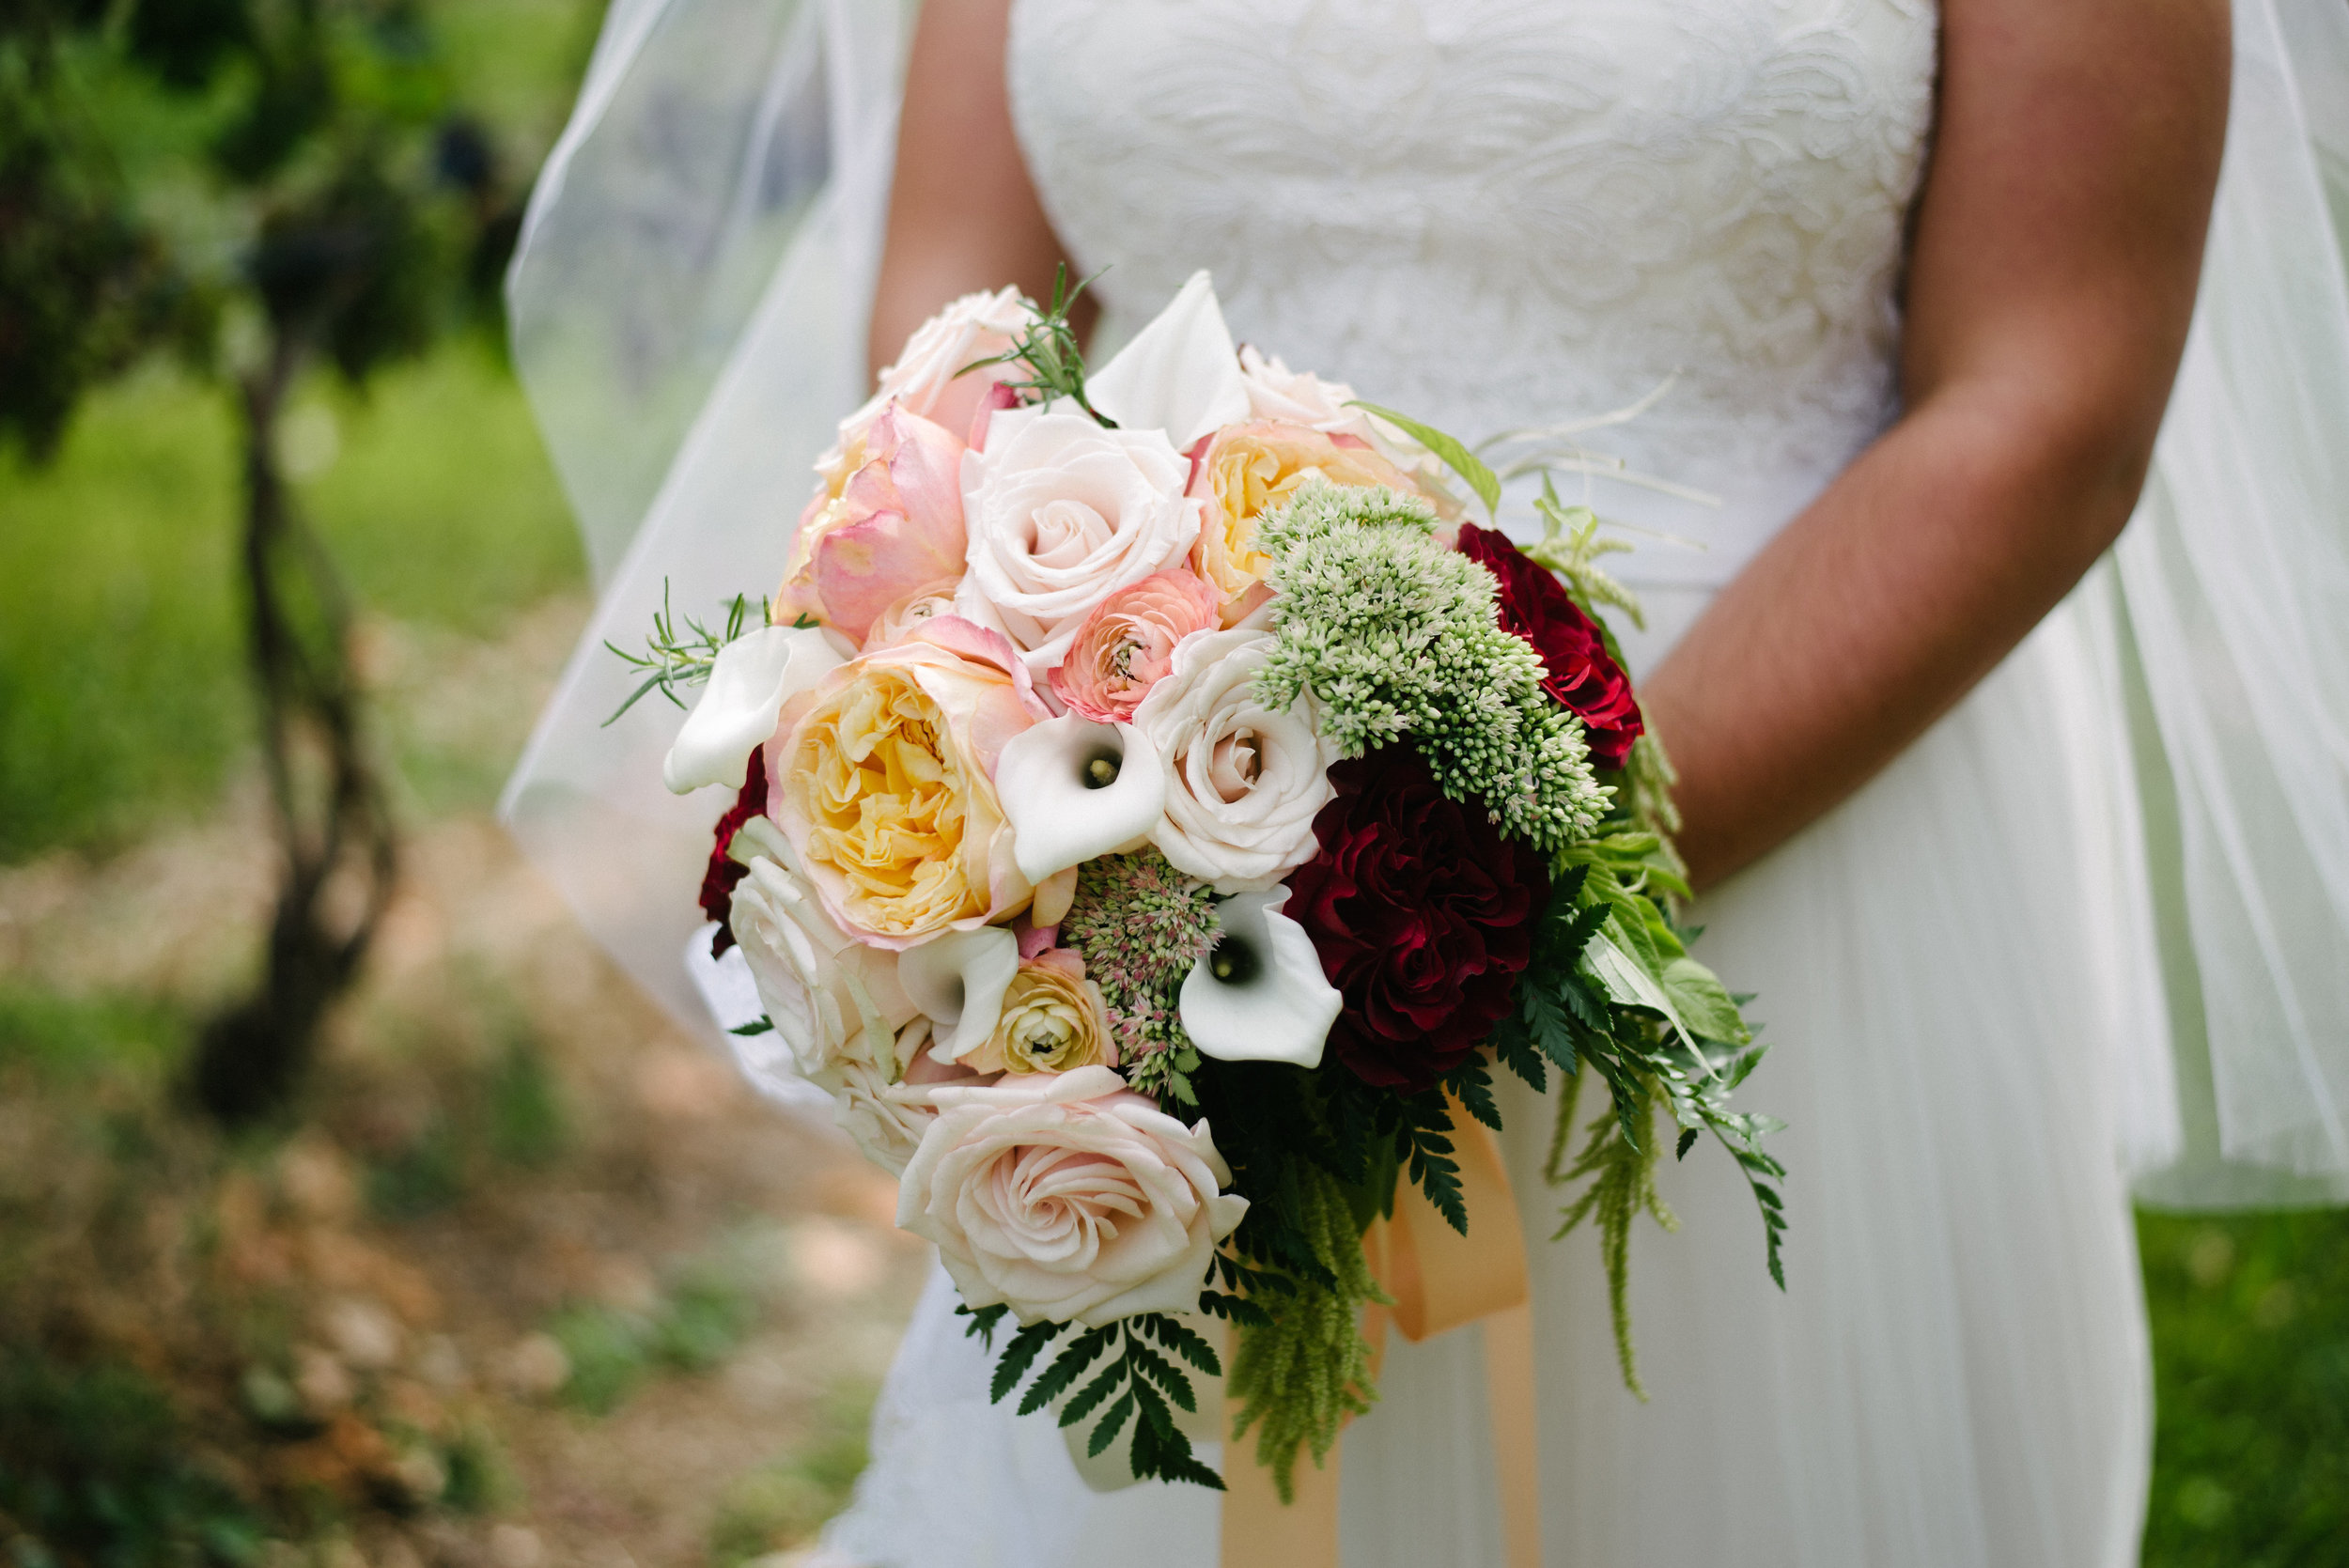 A hand-tied bouquet with luxury flowers: garden roses, mini calla lilies, ranunculus, sedum, amaranth, and greenery